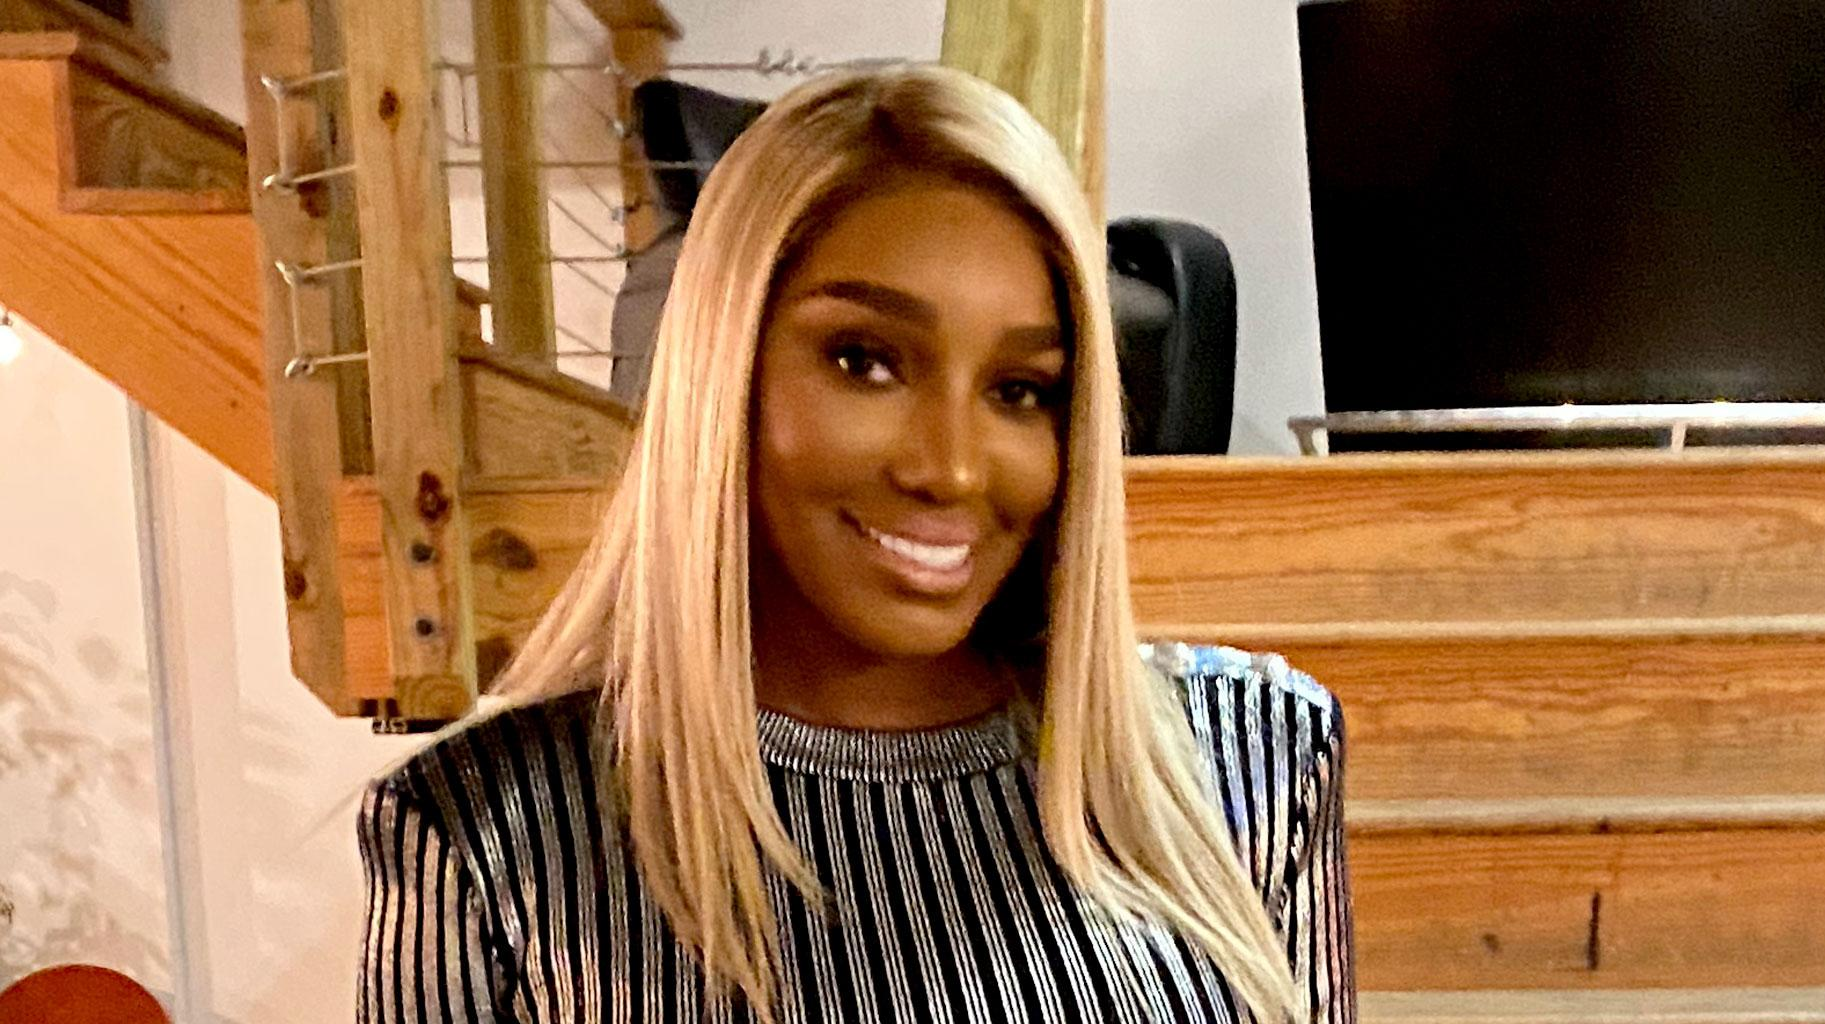 NeNe Leakes Shows Off Her Super Bowl Look And Fans Notice She Lost Weight